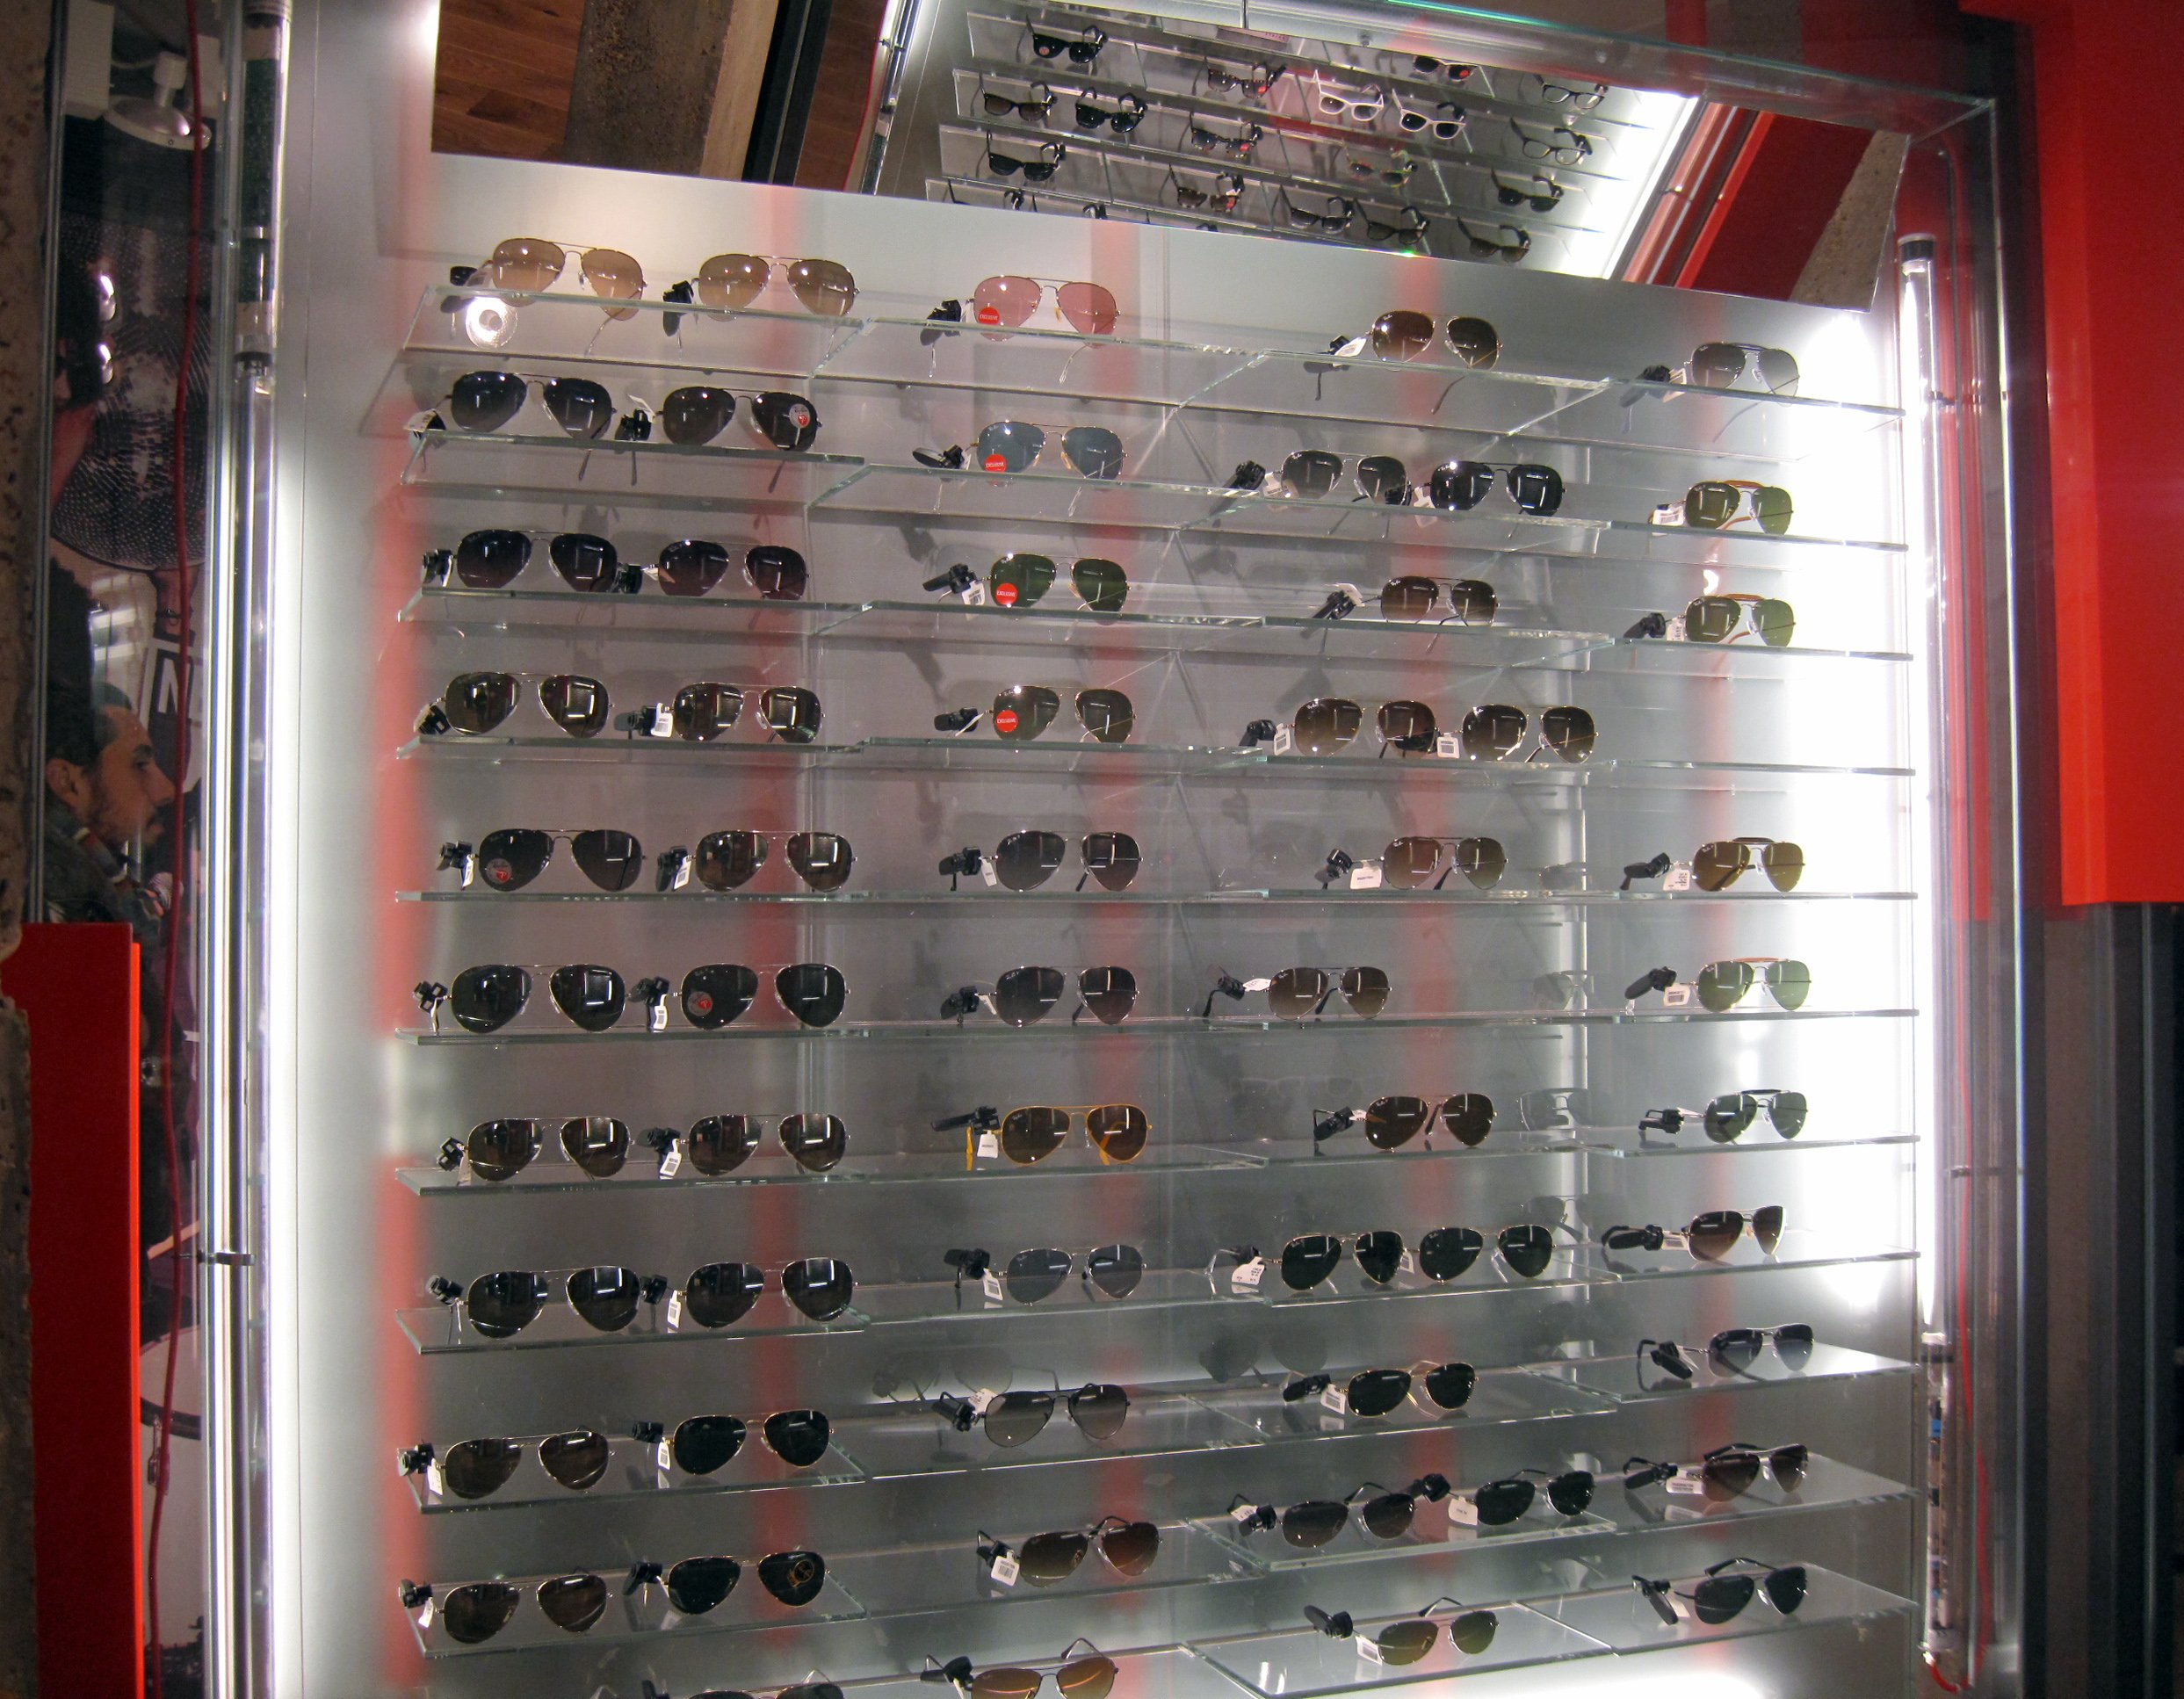 ray ban sunglasses service center  galleries - Ispira.Blog